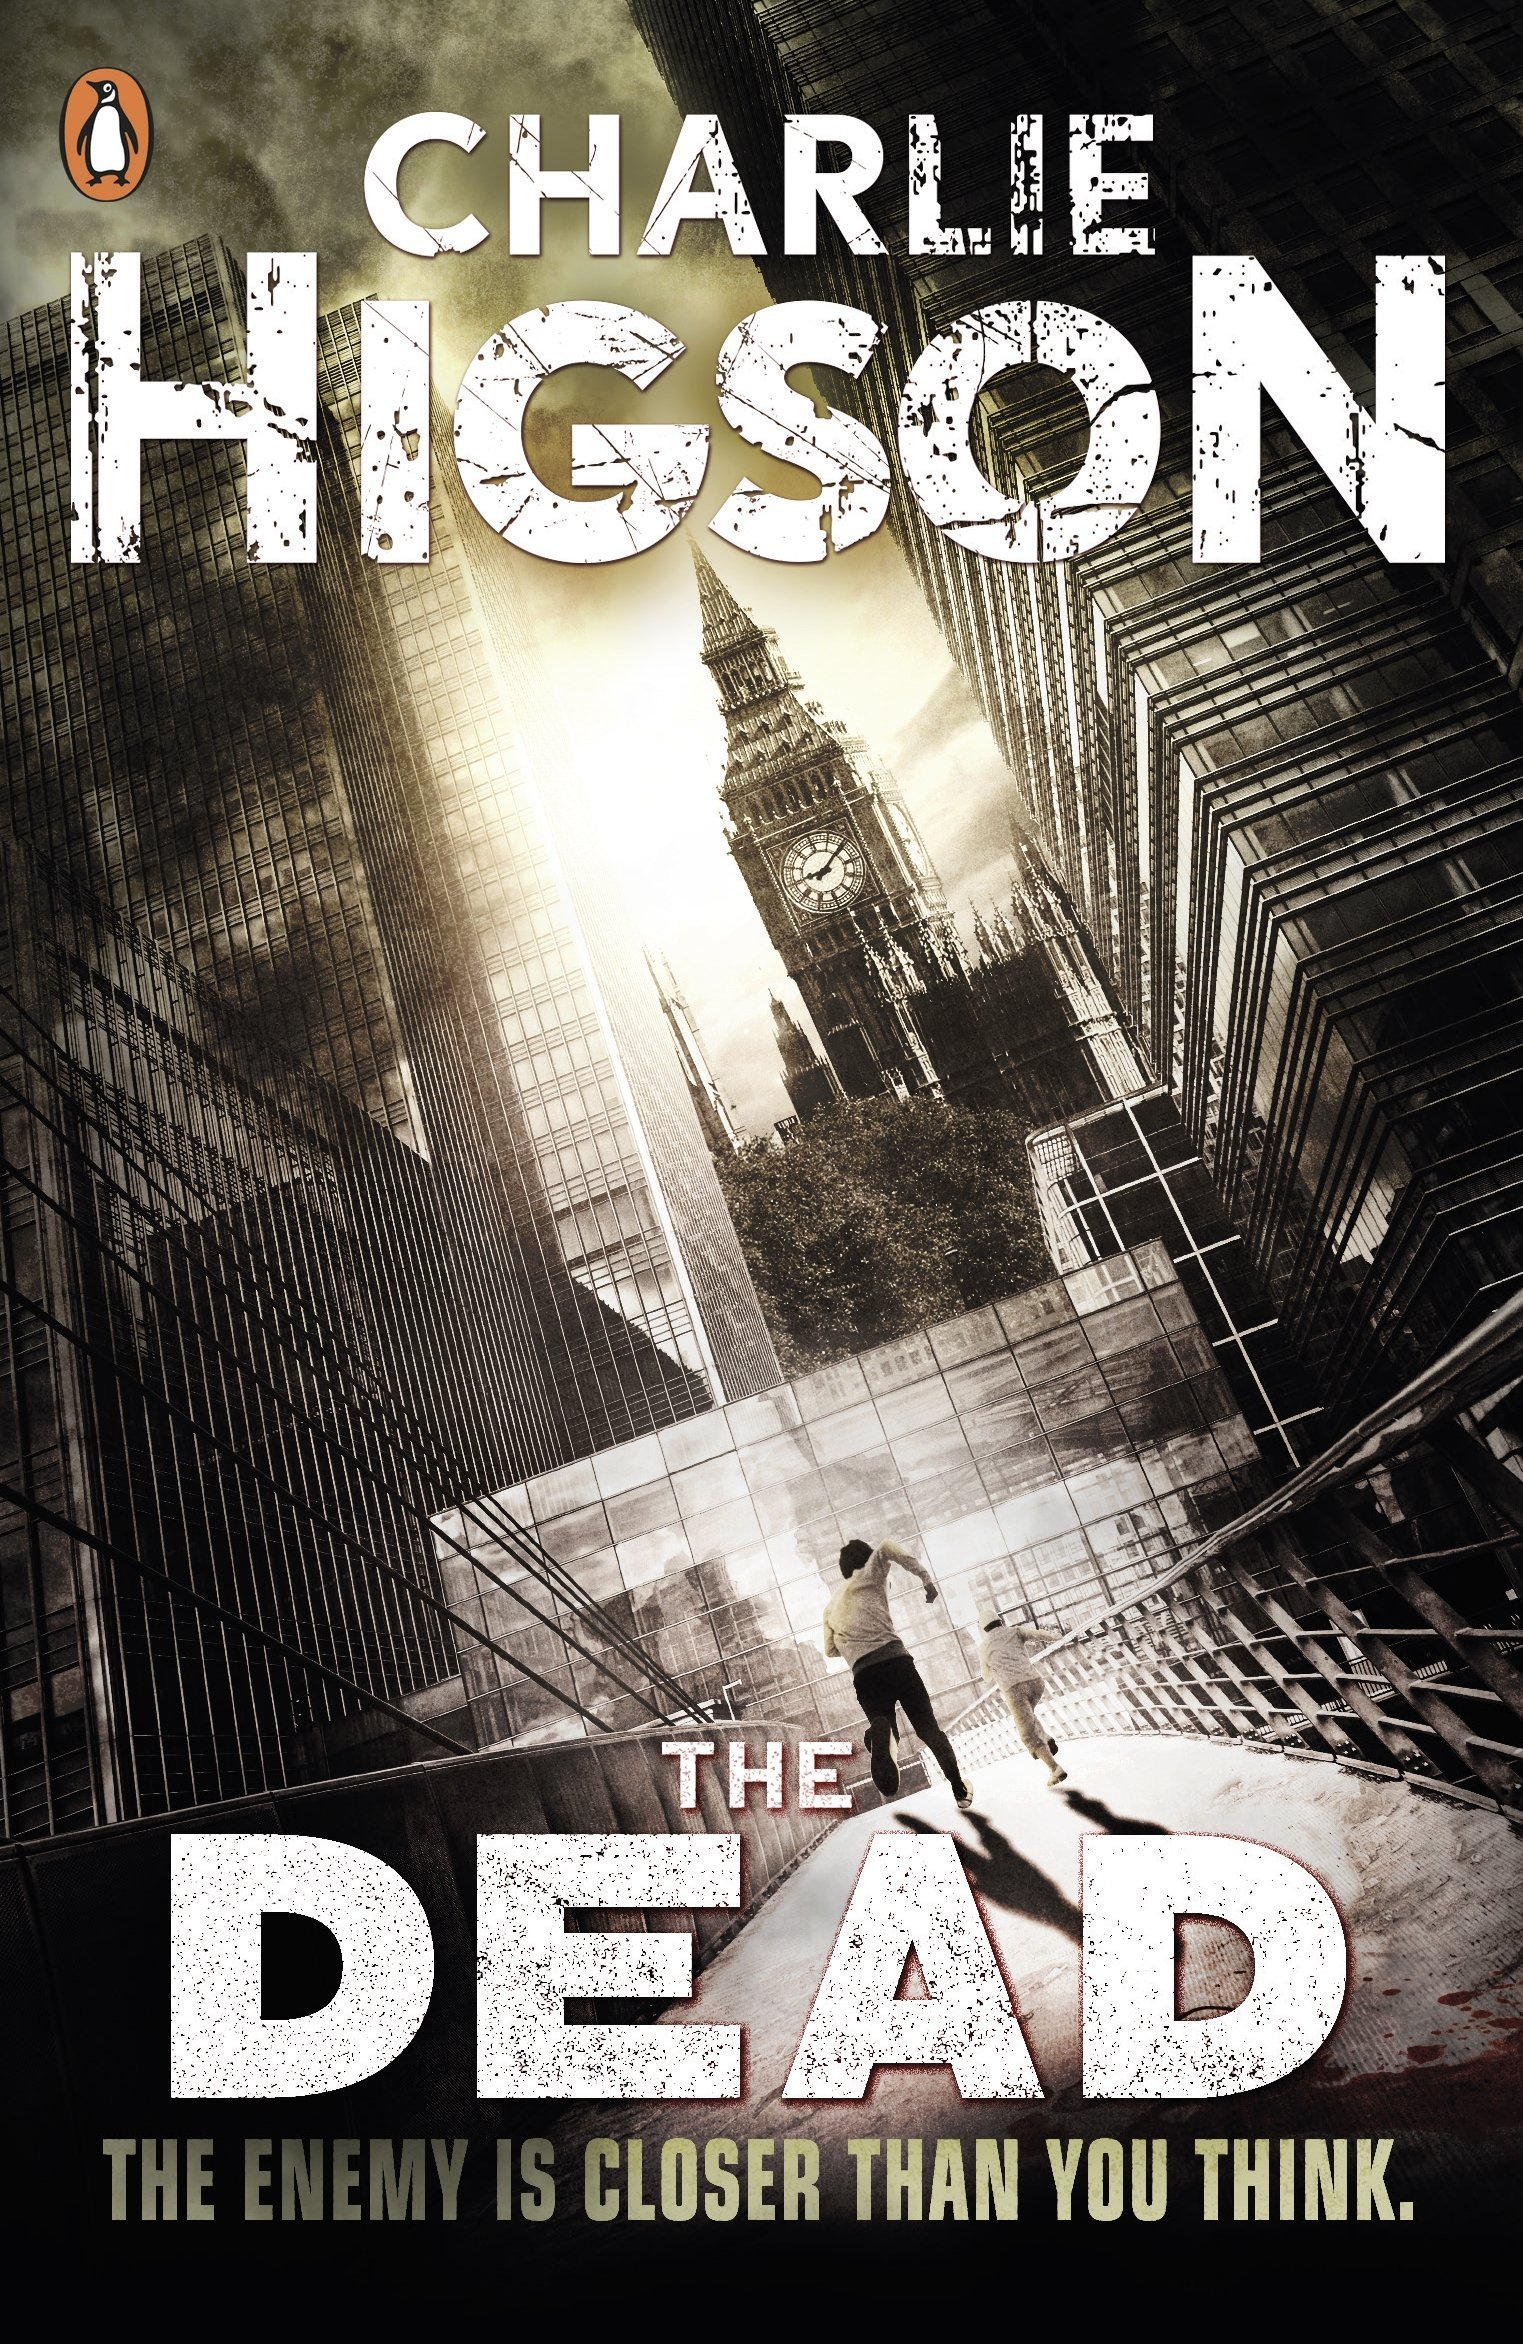 Enemy Book Series Charlie Higson Collection 7 Books Set (the Enemy, The  Dead, The Fear, The Sacrifies, The Fallen, The Hunted, The End ): Charlie  Higson: